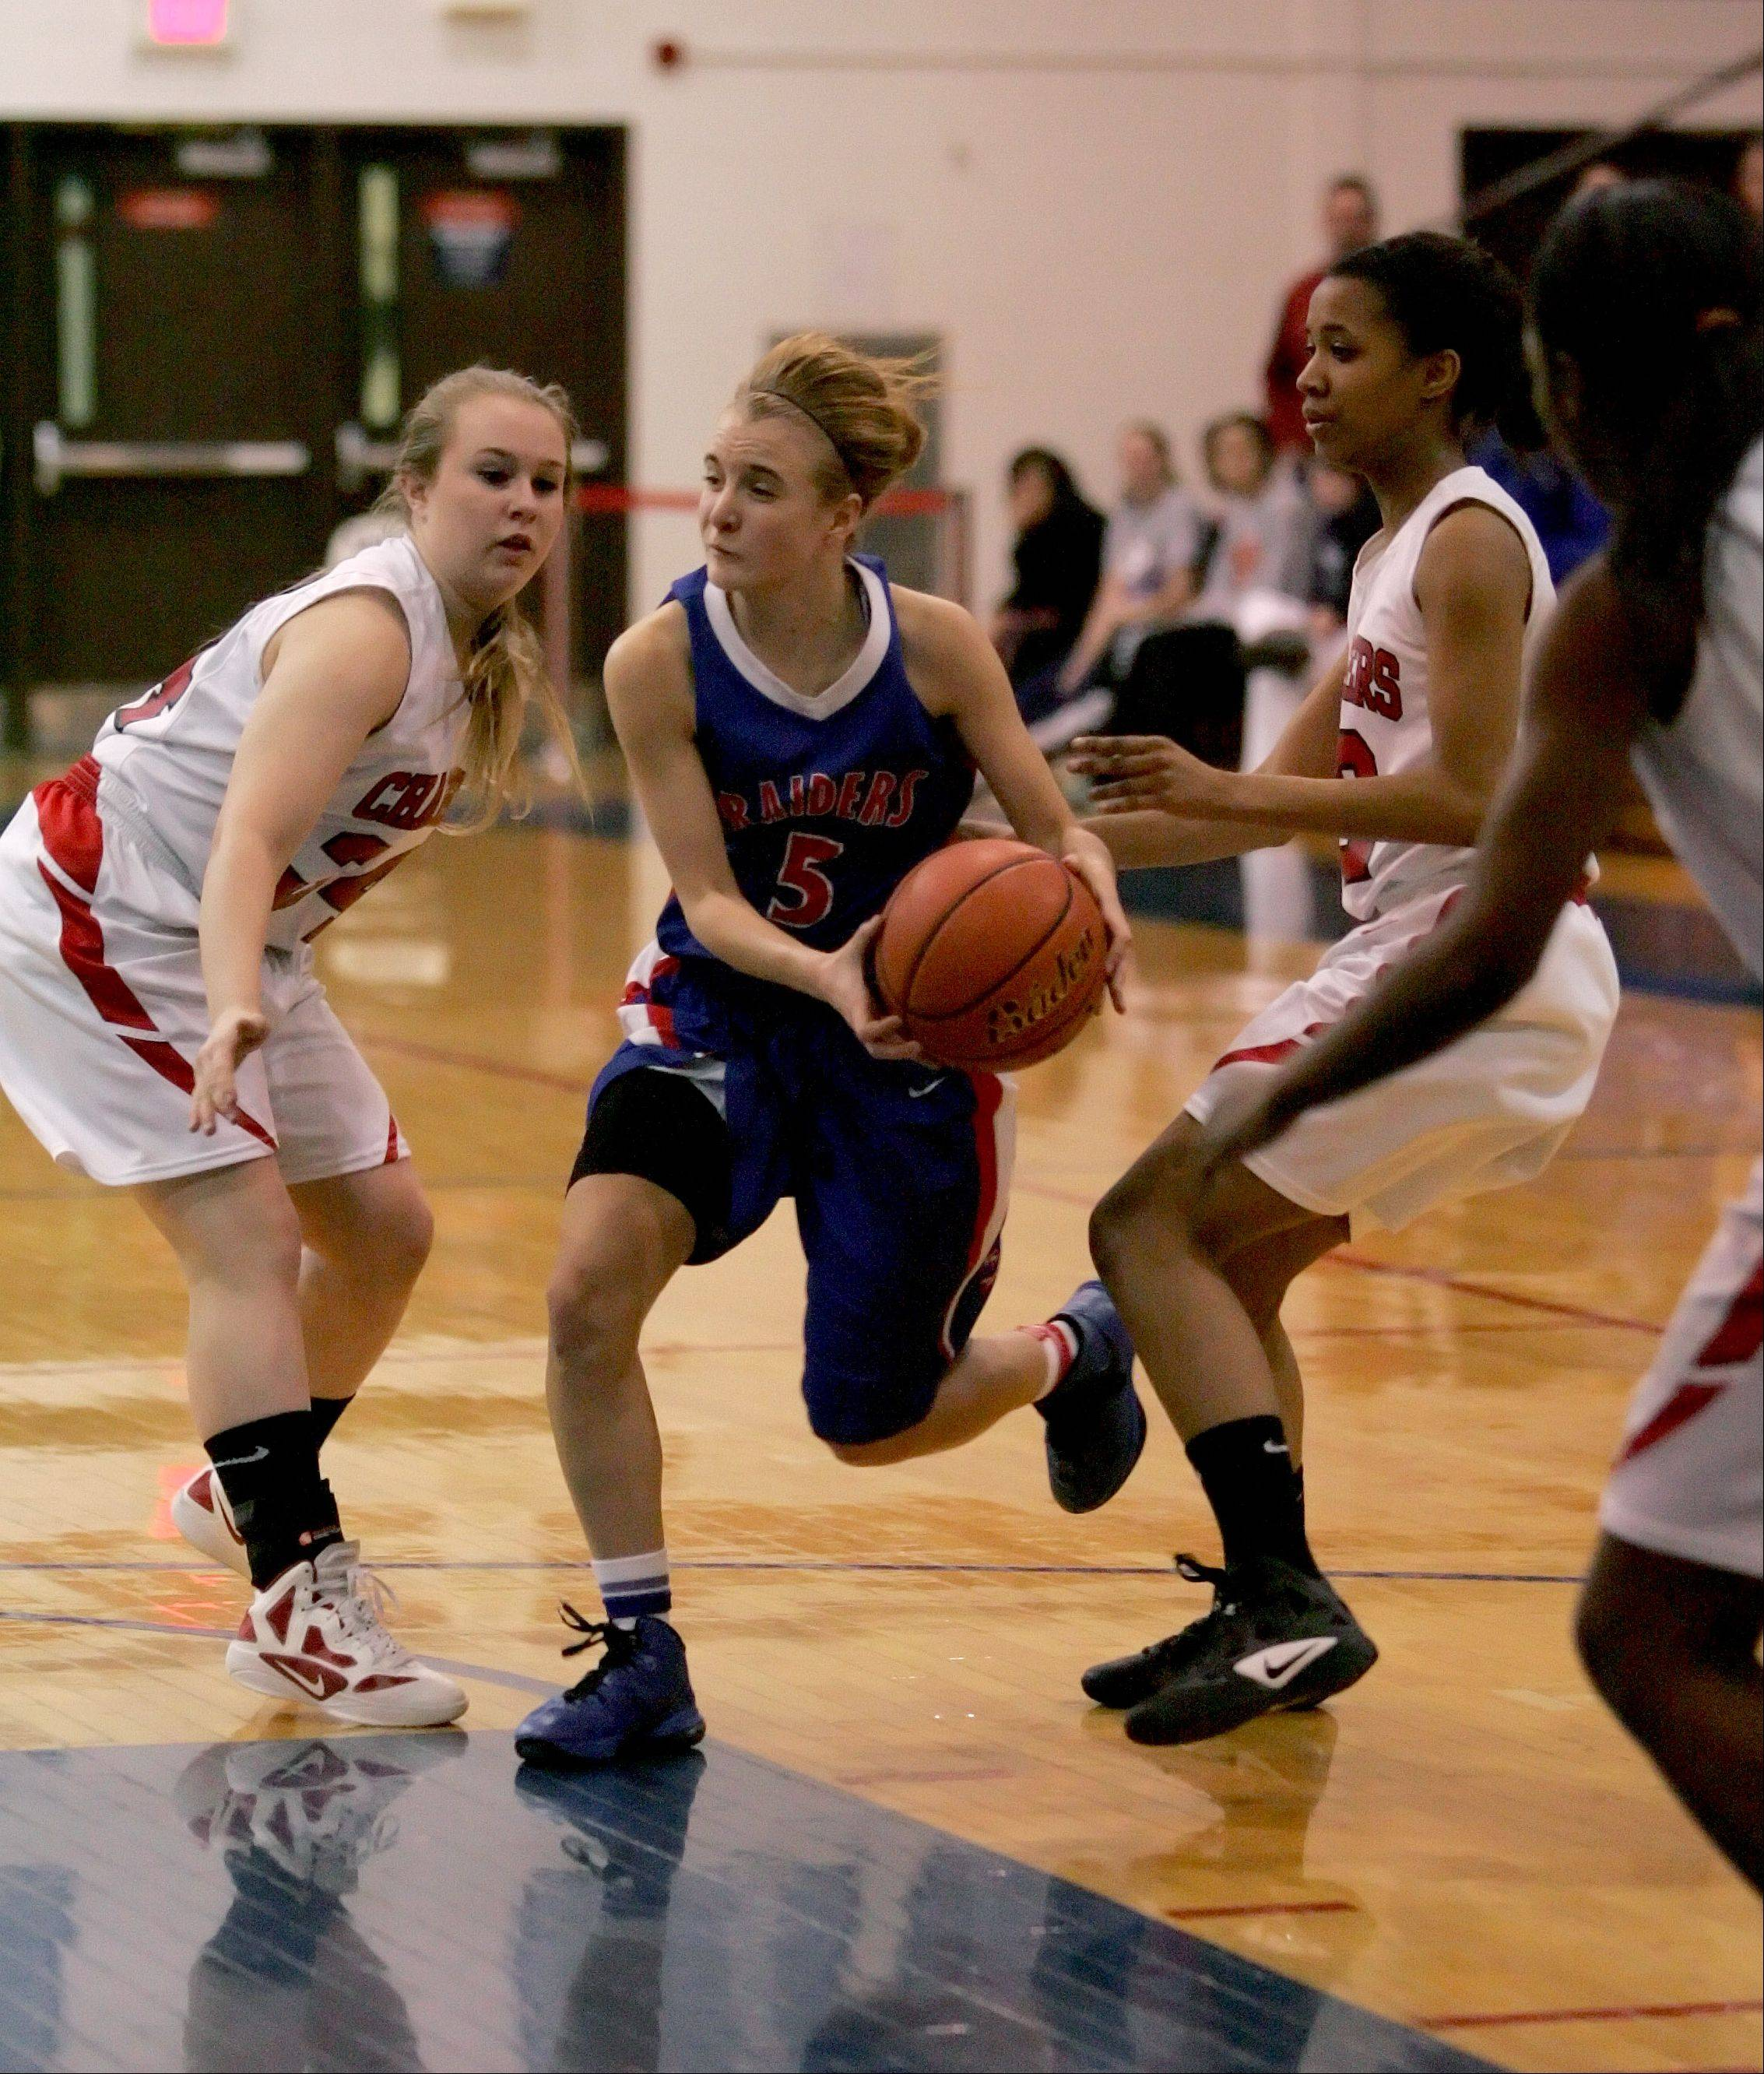 Images: Glenbard South vs. St. Joseph girls basketball